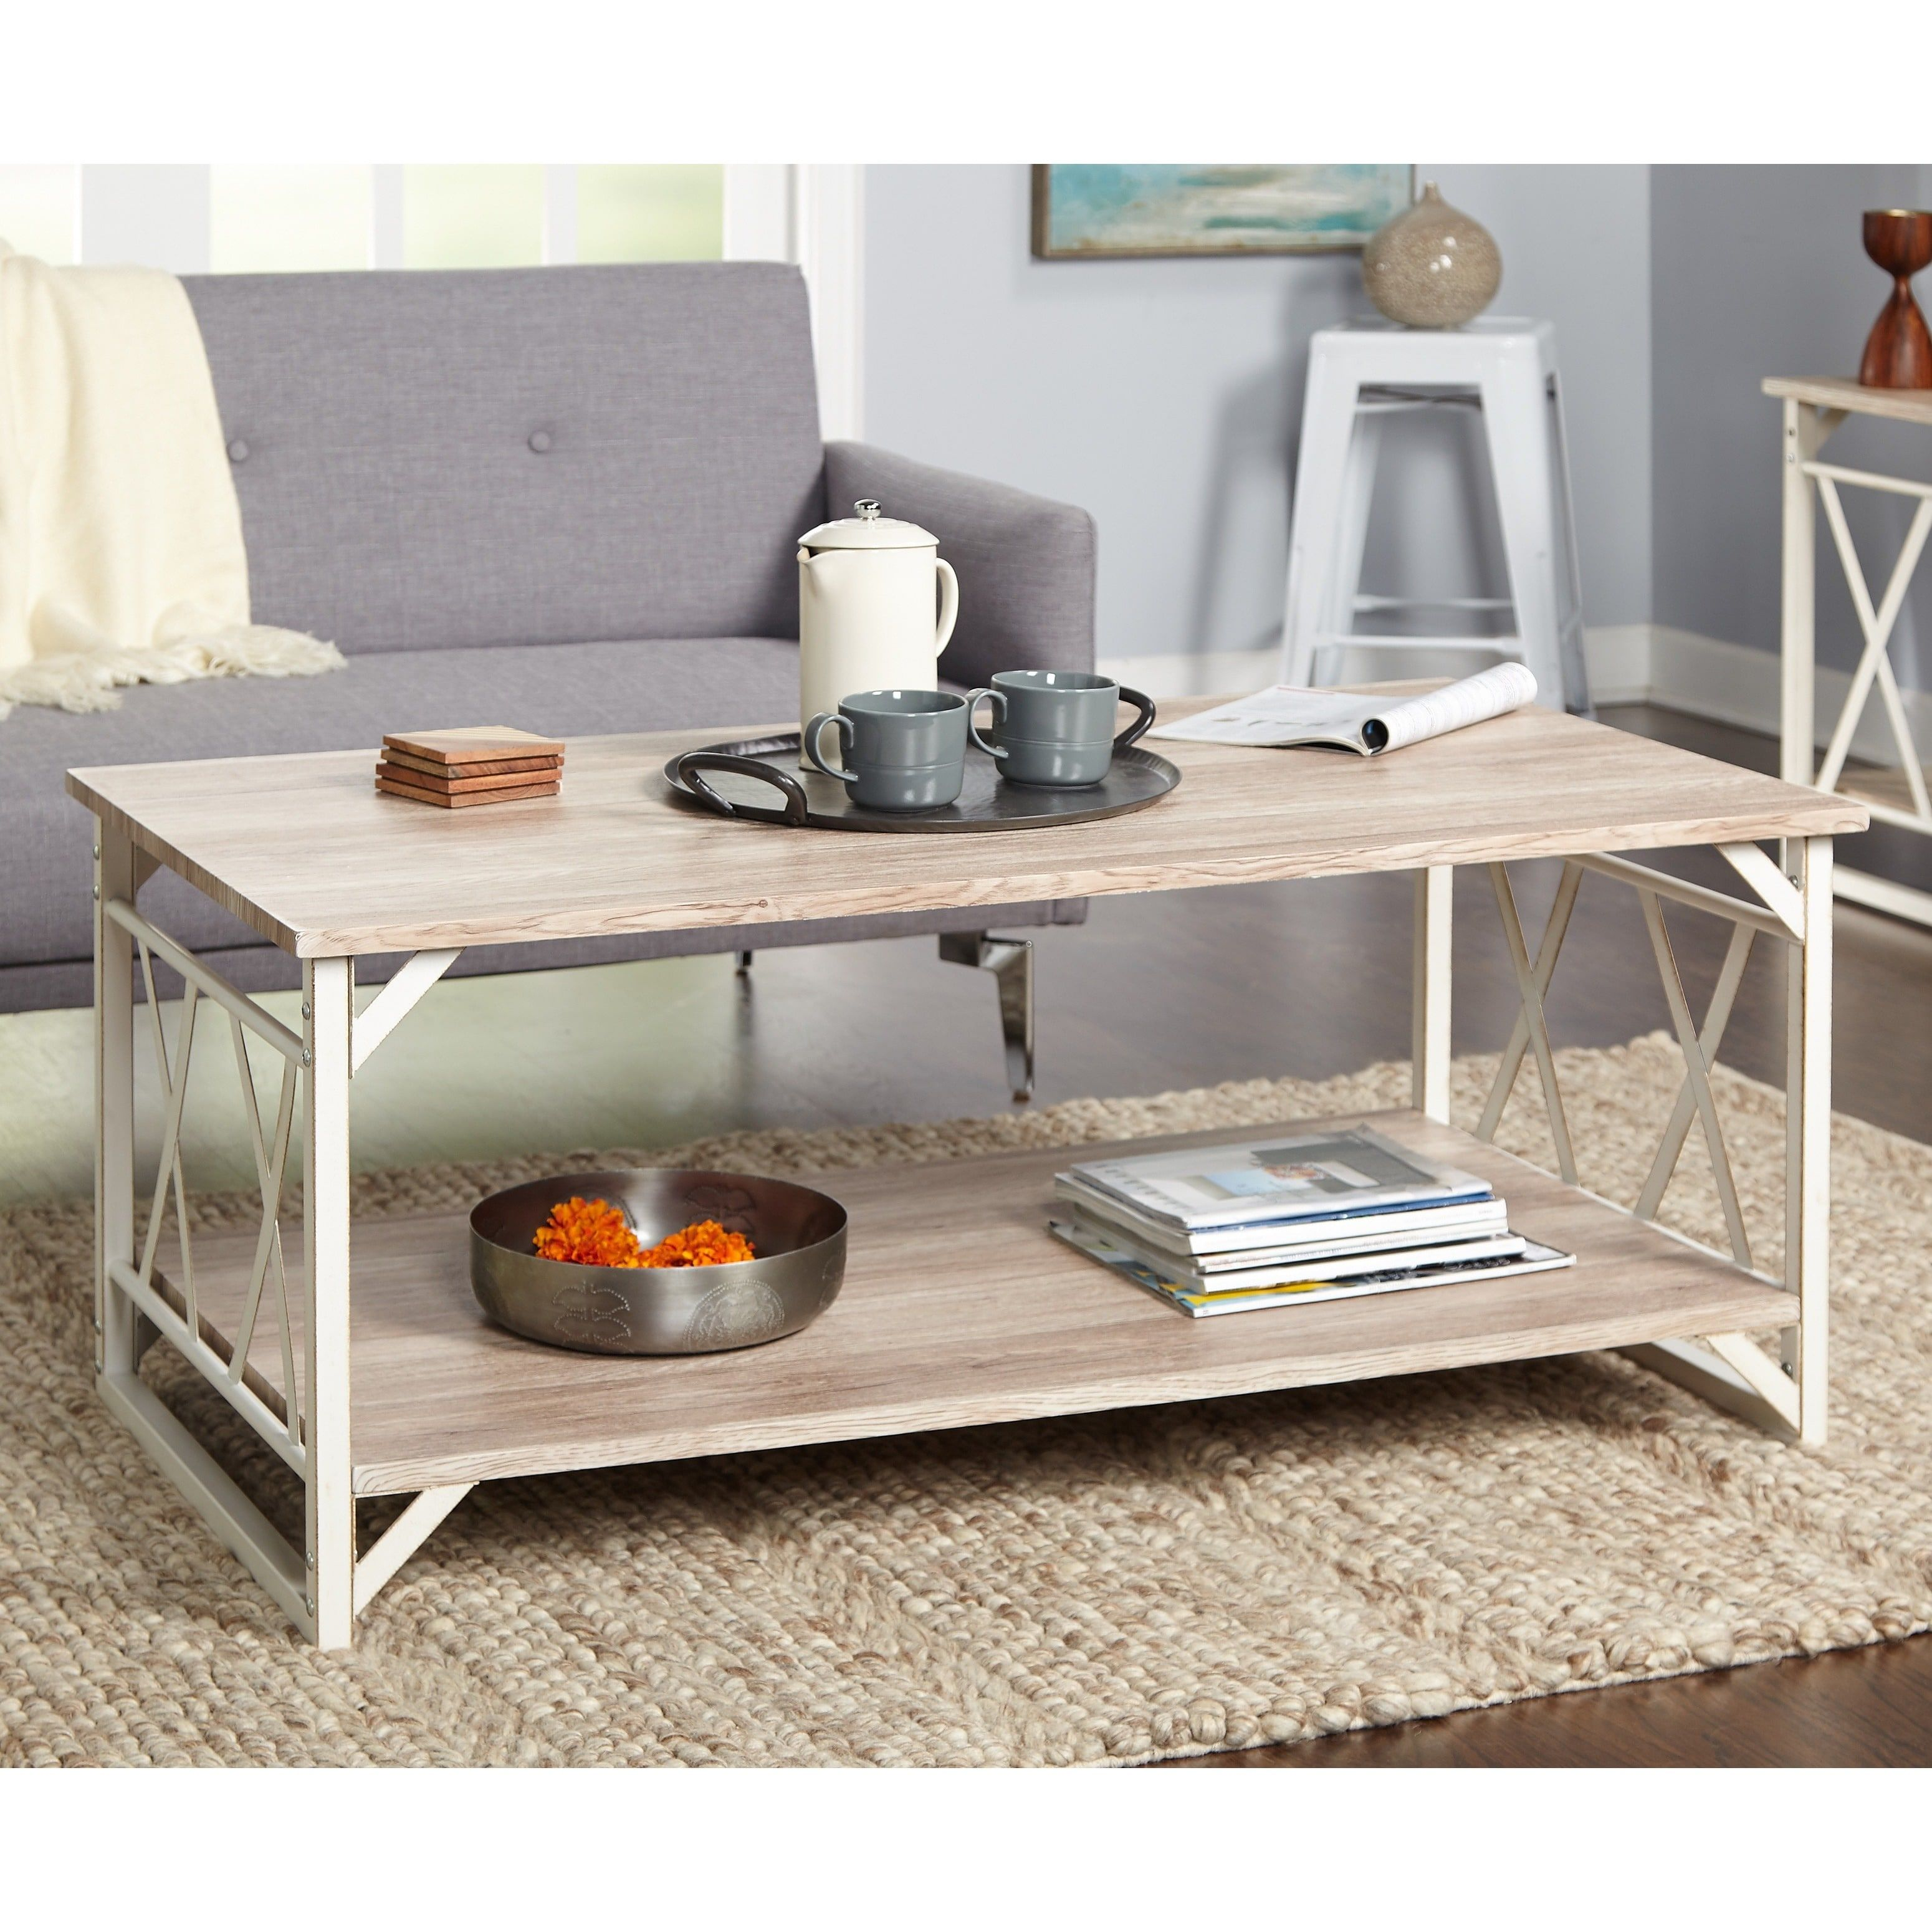 Simple Living Reclaimed Style Coffee Table With Double X Frame Coffee Table White Furniture Living Room Coffee Table Wood [ 3100 x 3100 Pixel ]